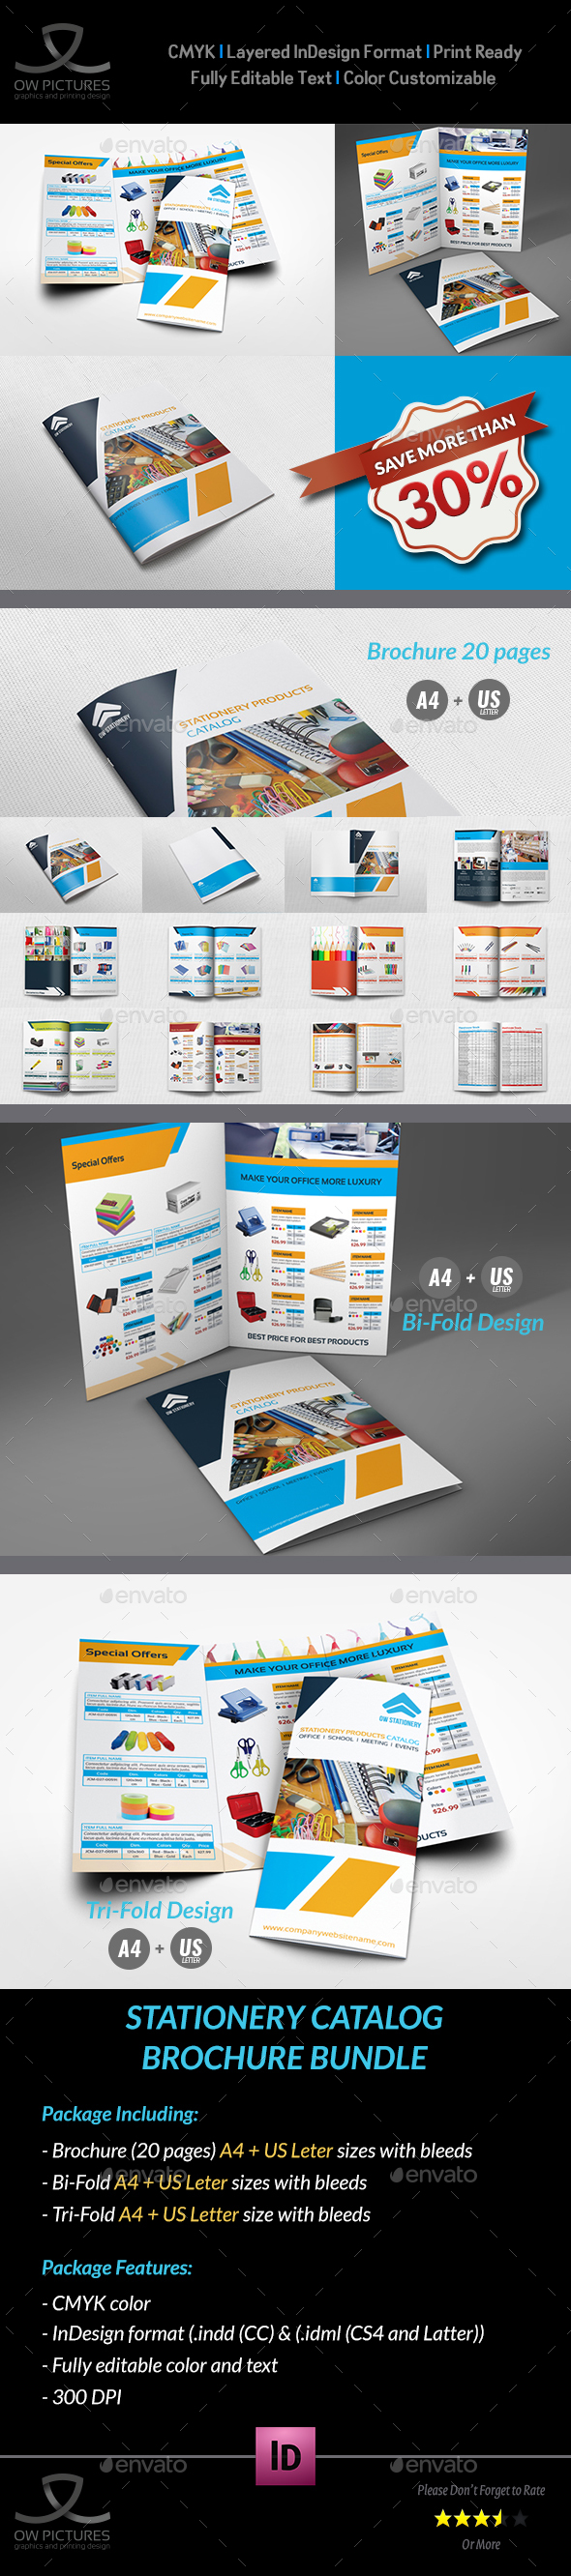 Stationery Products Catalog Brochure Bundle - Catalogs Brochures